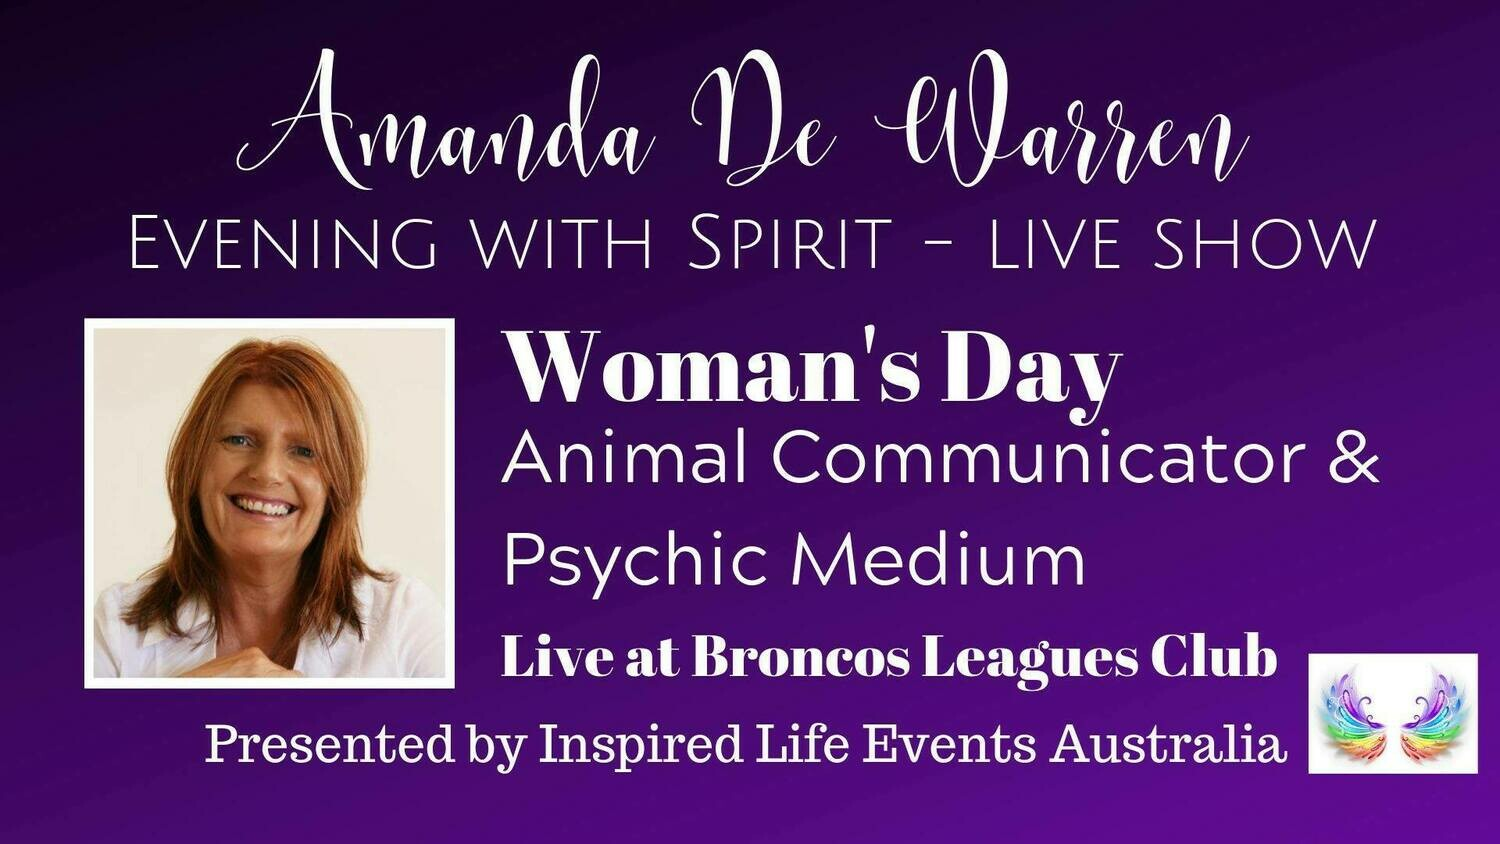 09/11/19 - Amanda De Warren - Evening with Spirit